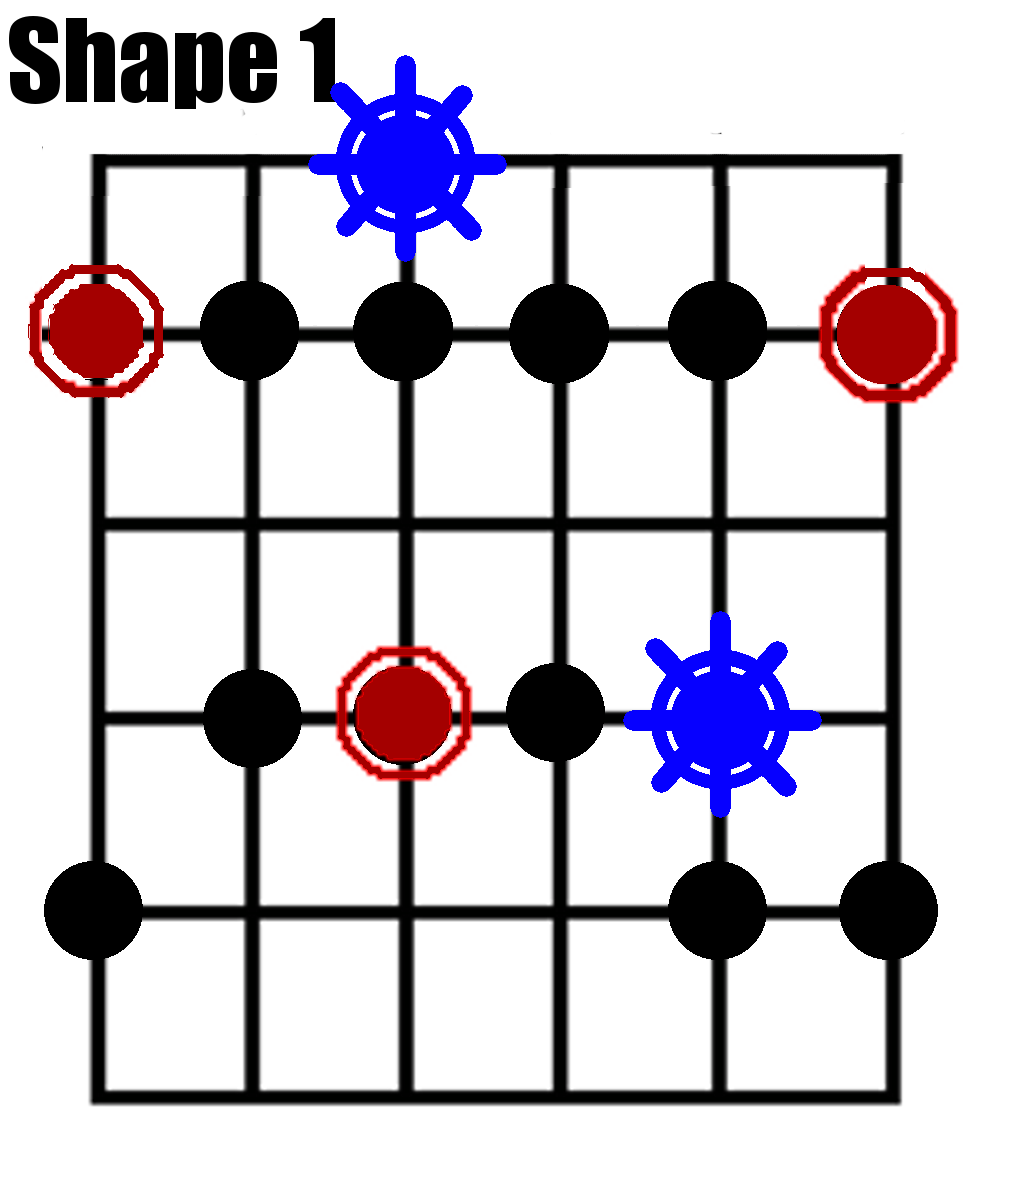 first shape of the minor pentatonic scale diagram with the positions of the major 6th added to create blues modes